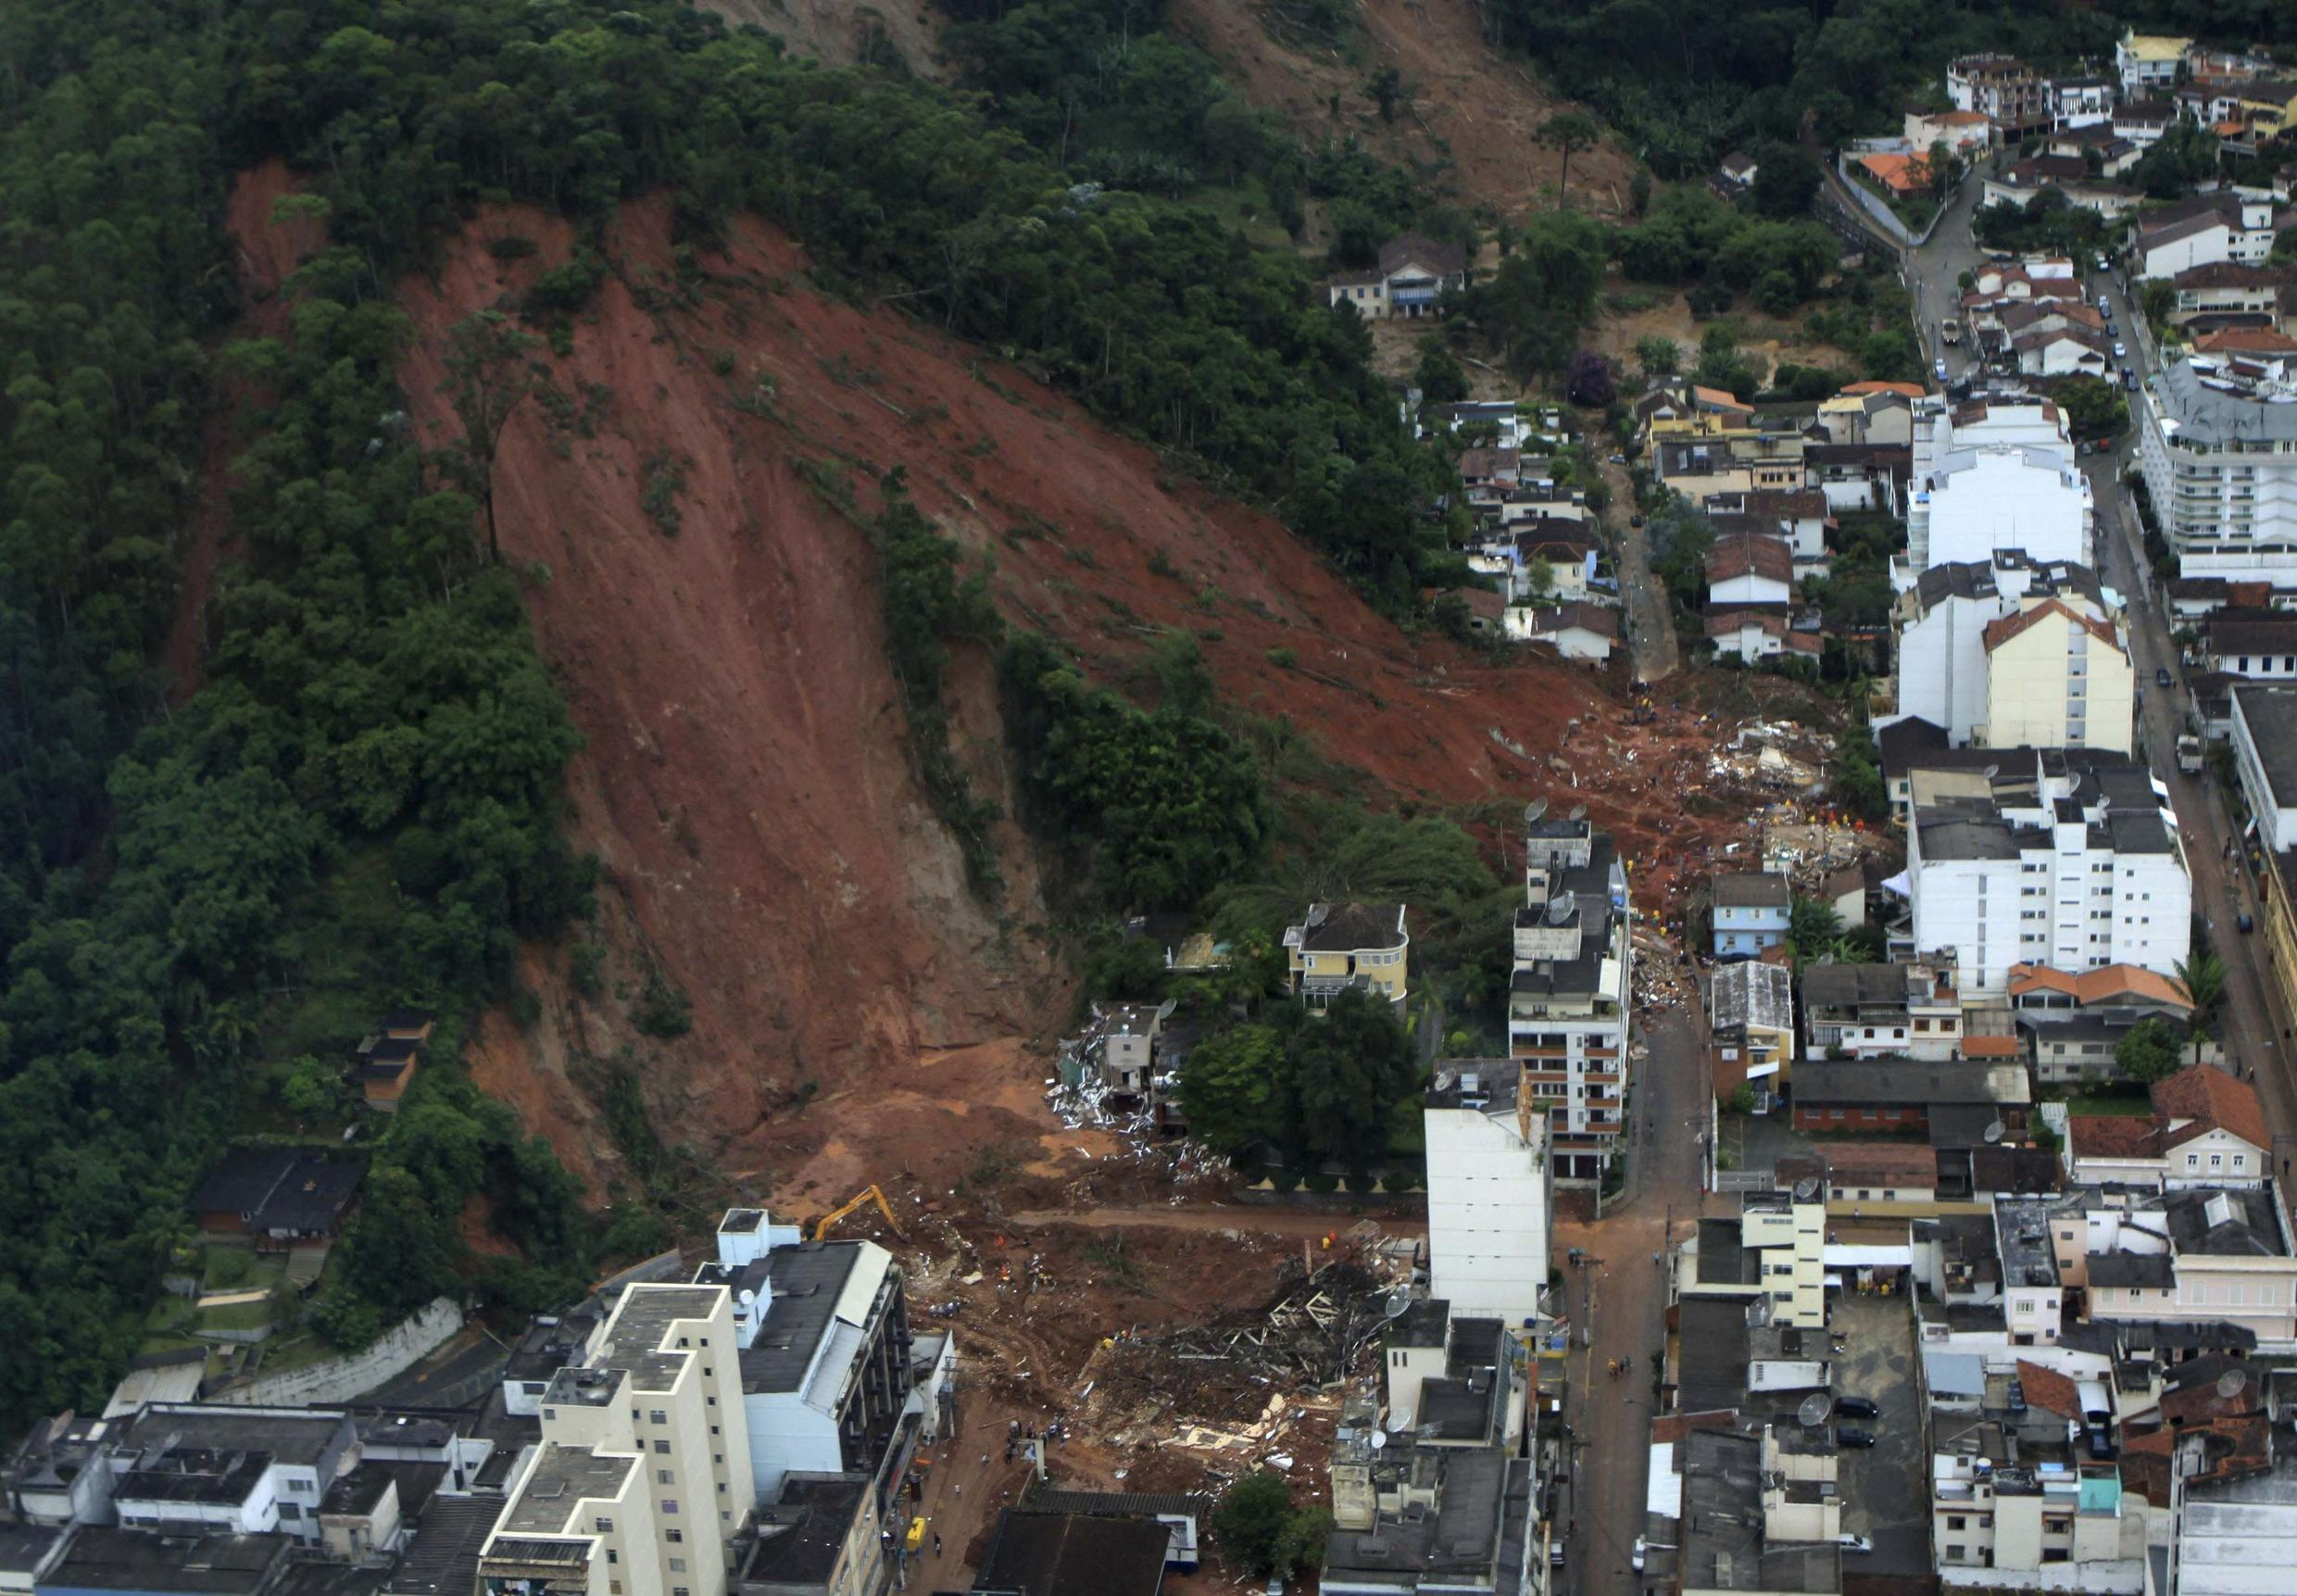 An aerial view of a neighborhood partially destroyed by a landslide caused by heavy rains in Nova Friburgo